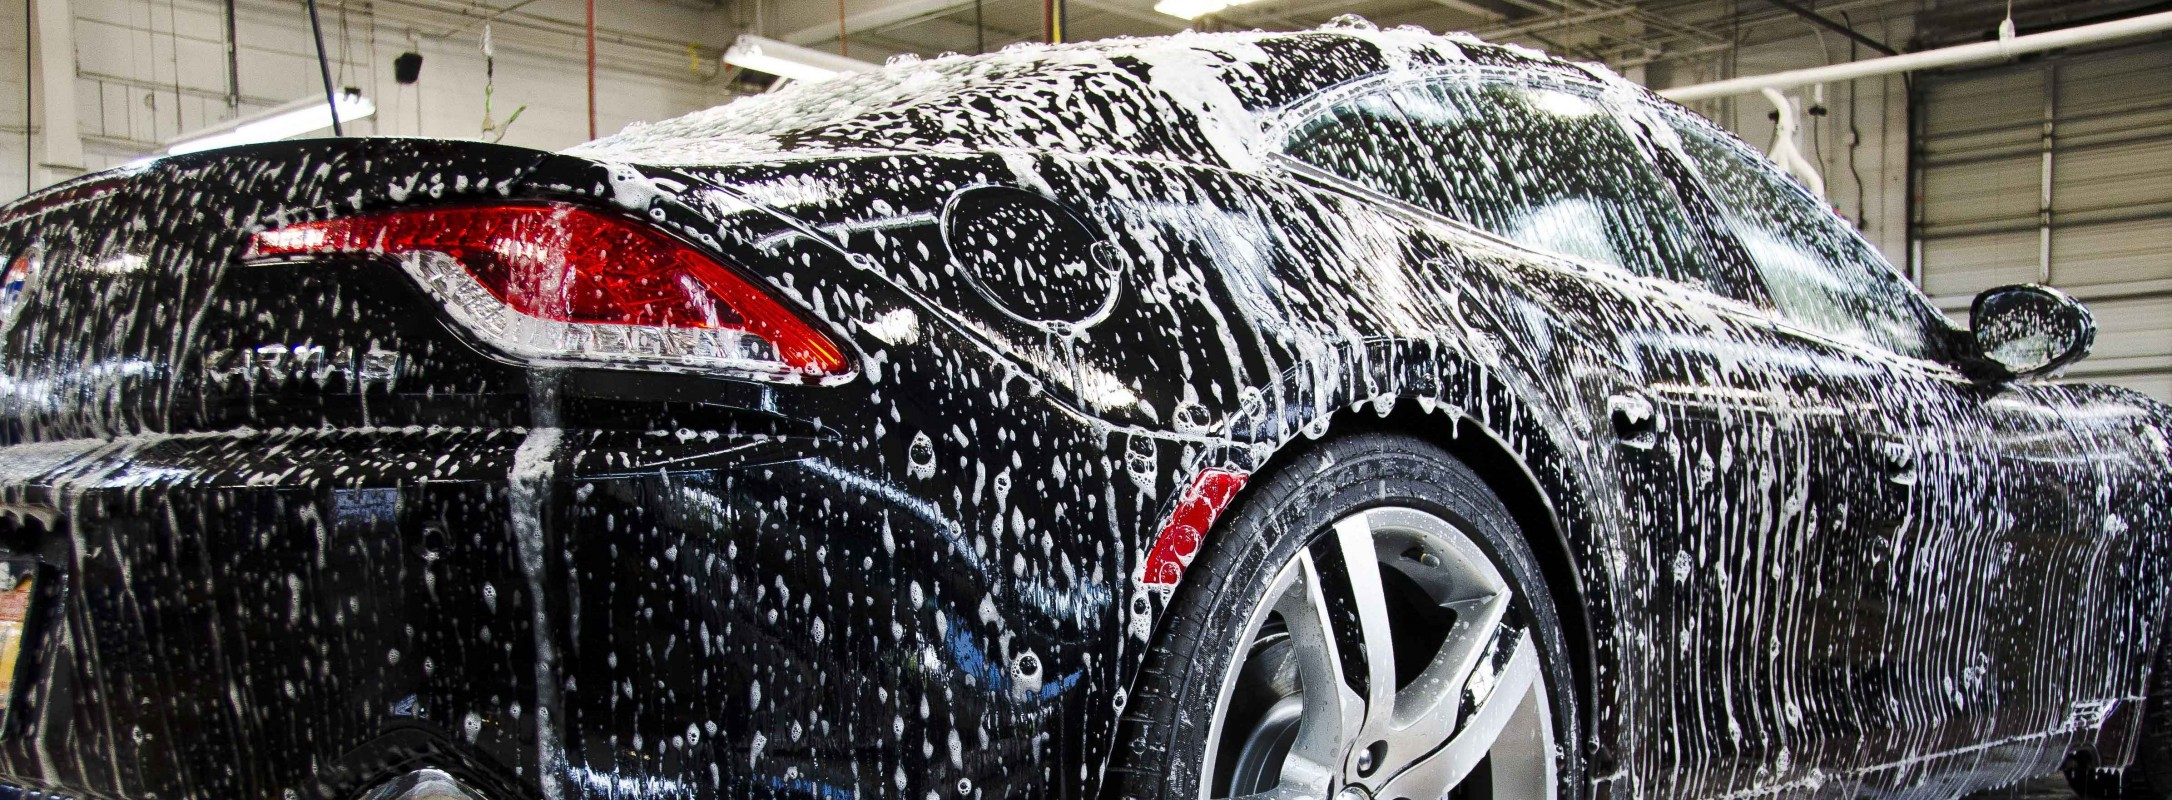 Eco Friendly Car Wash Auto Detailing San Diego Mobile Auto Detailing Windshield Repair